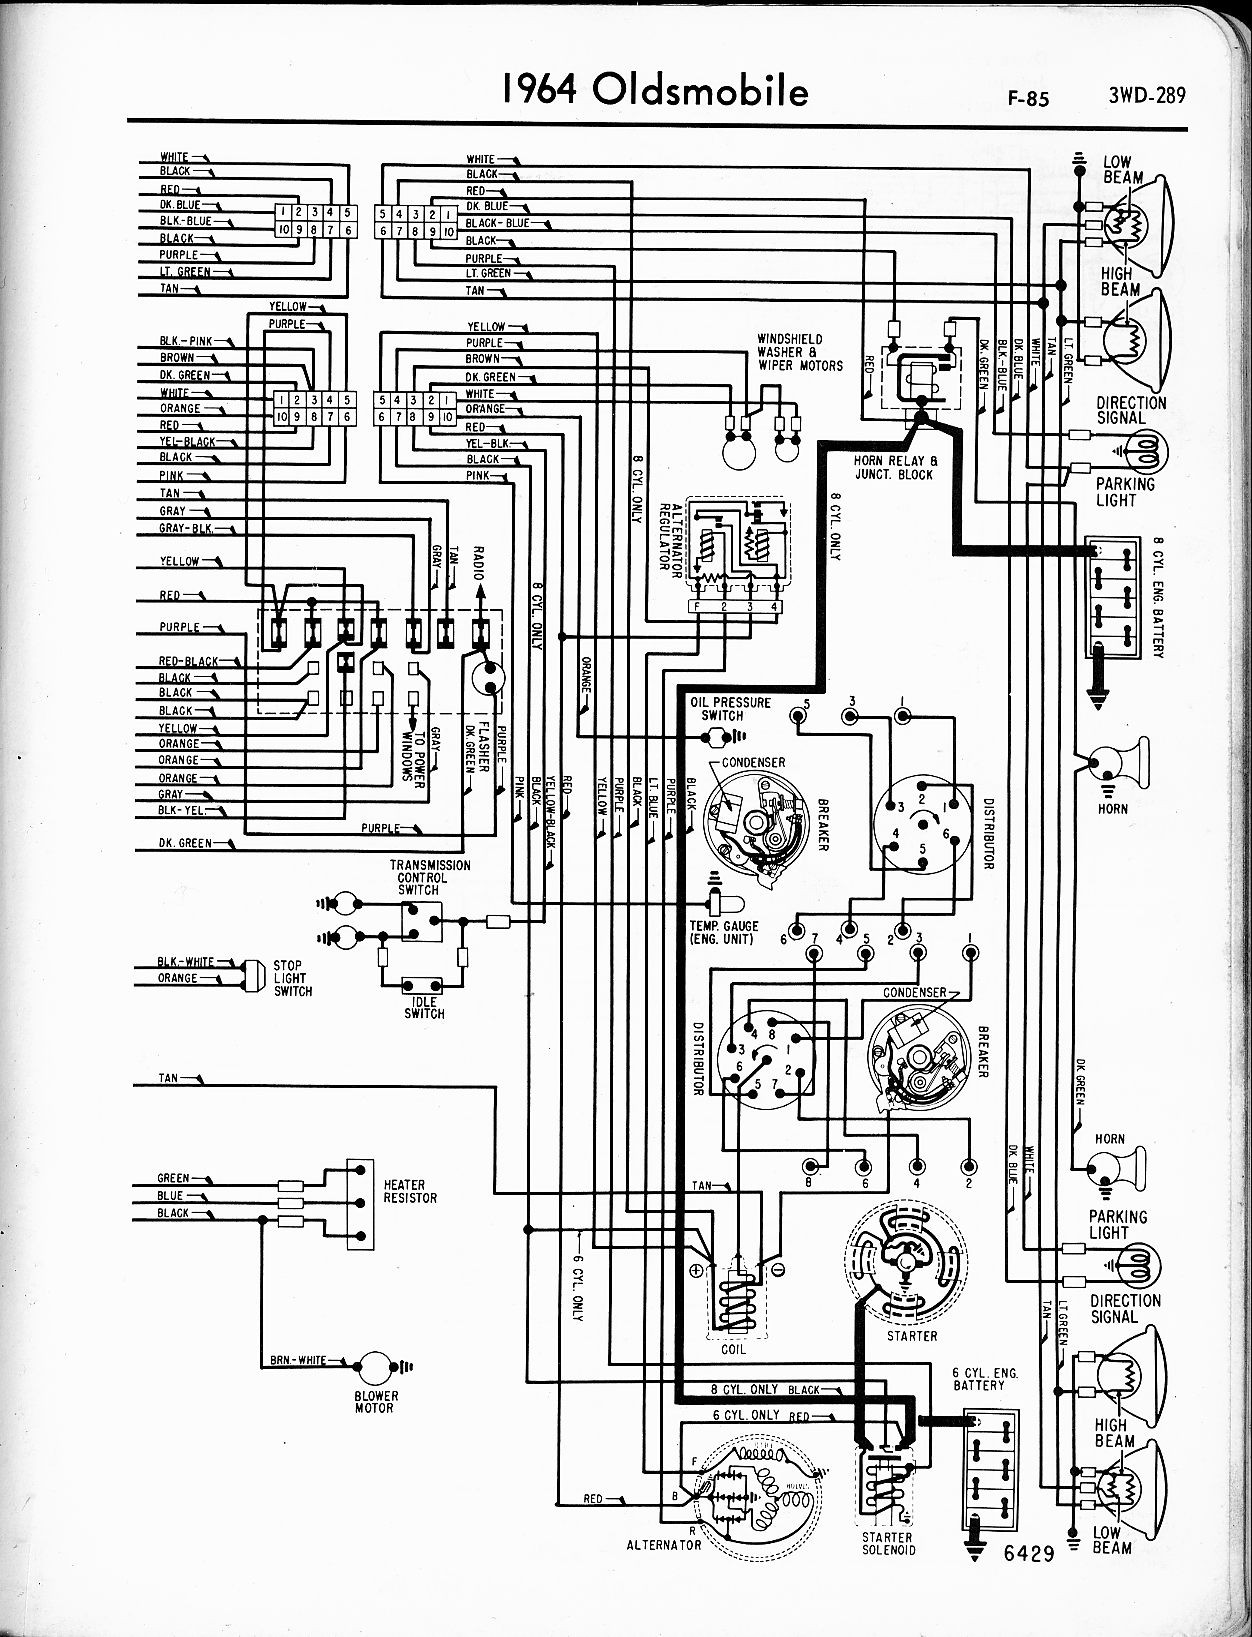 Wiring Diagram For 2004 Alero - Wiring Diagrams List on